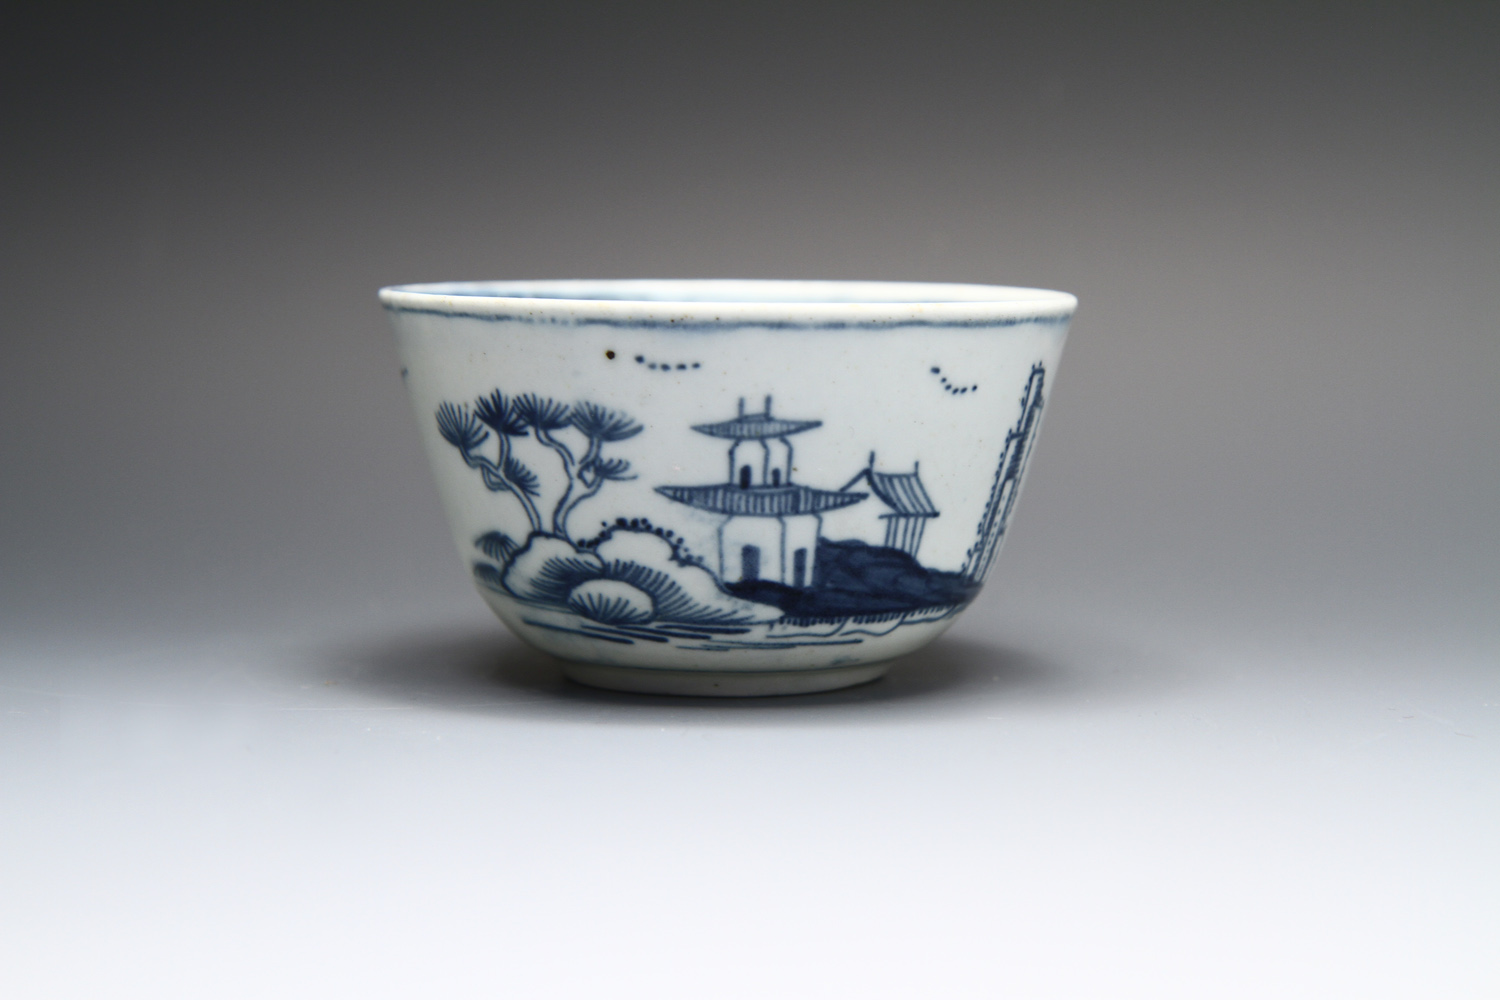 1083 - A fine James Pennington Liverpool teabowl, c 1758-60